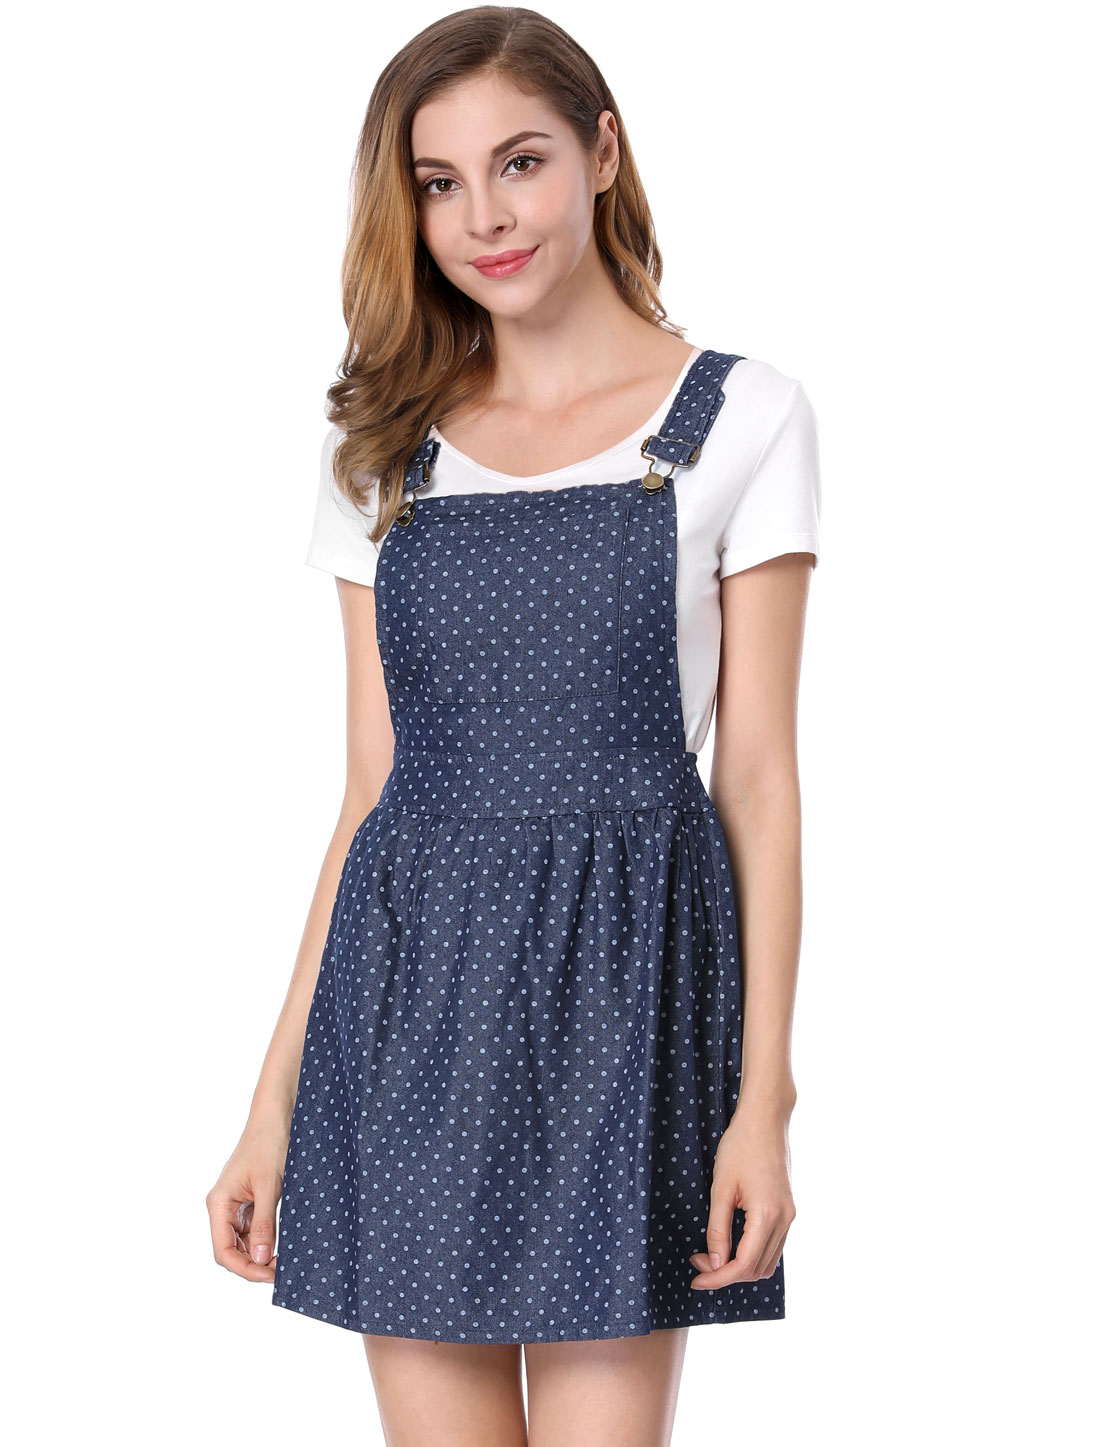 Women Dots Pattern Adjustable Shoulder Straps Denim Overall Dress Dark Blue M